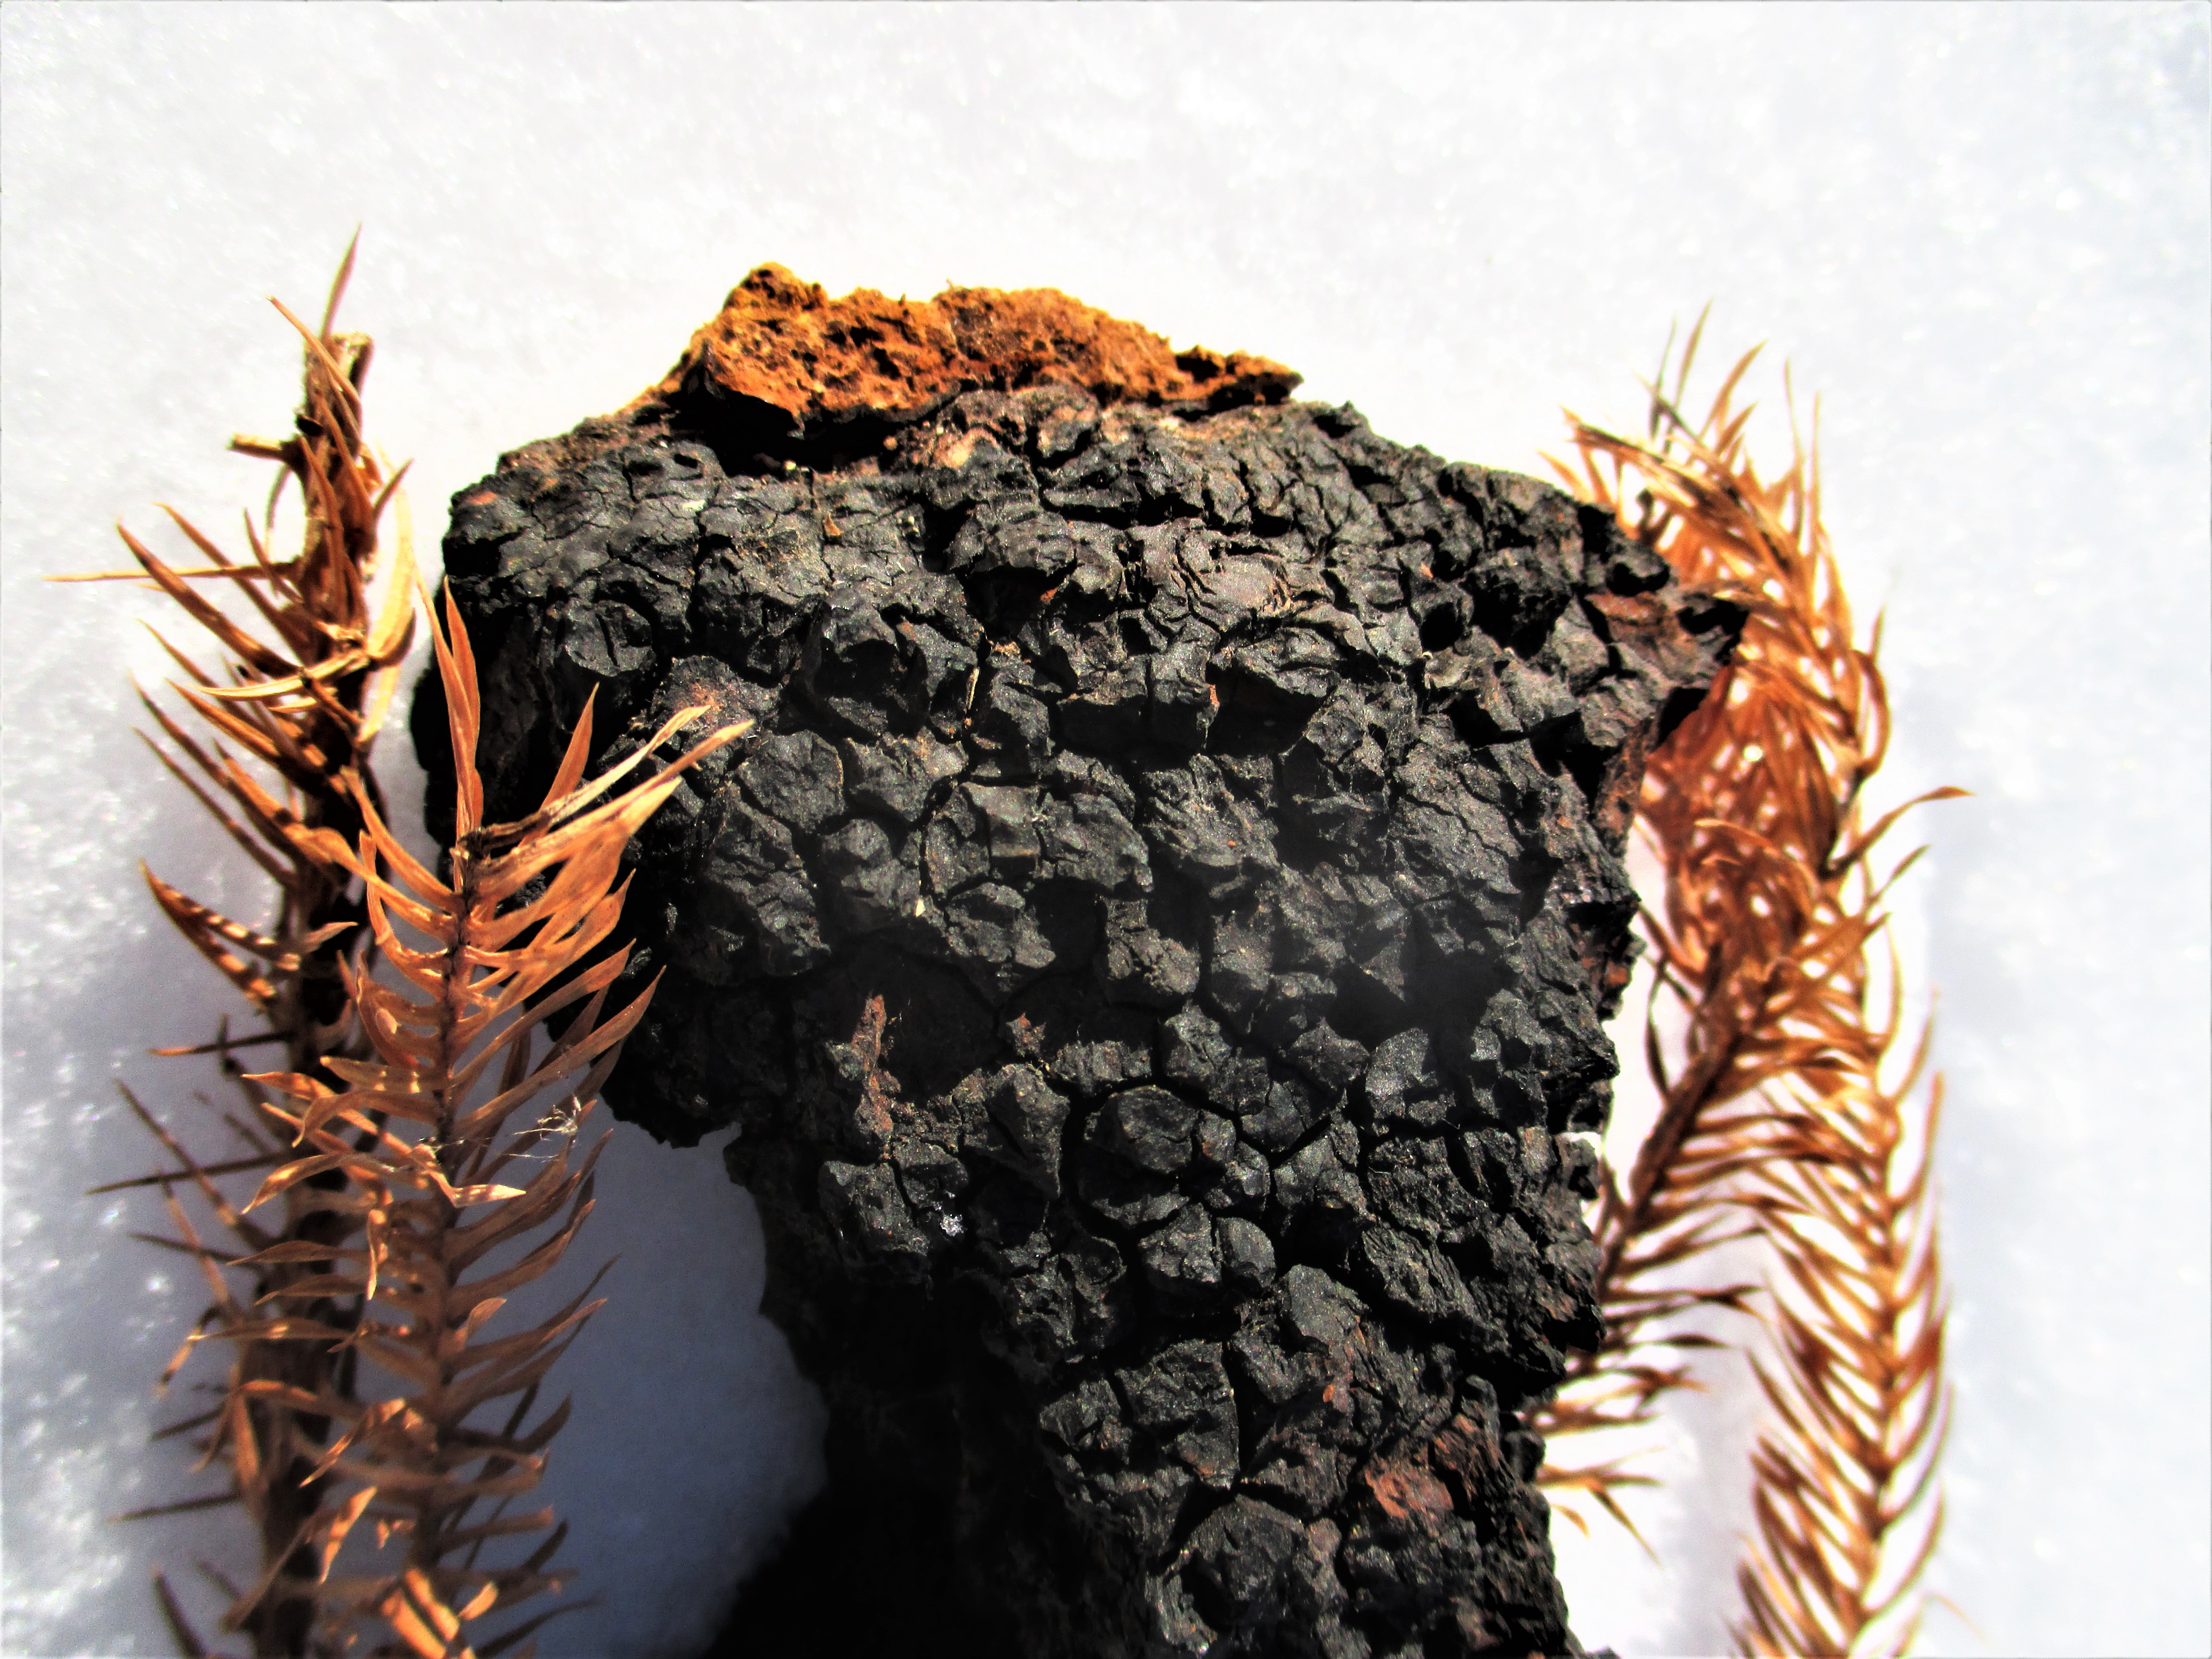 Chaga in Snow with Pine Branches | Iowa Herbalist